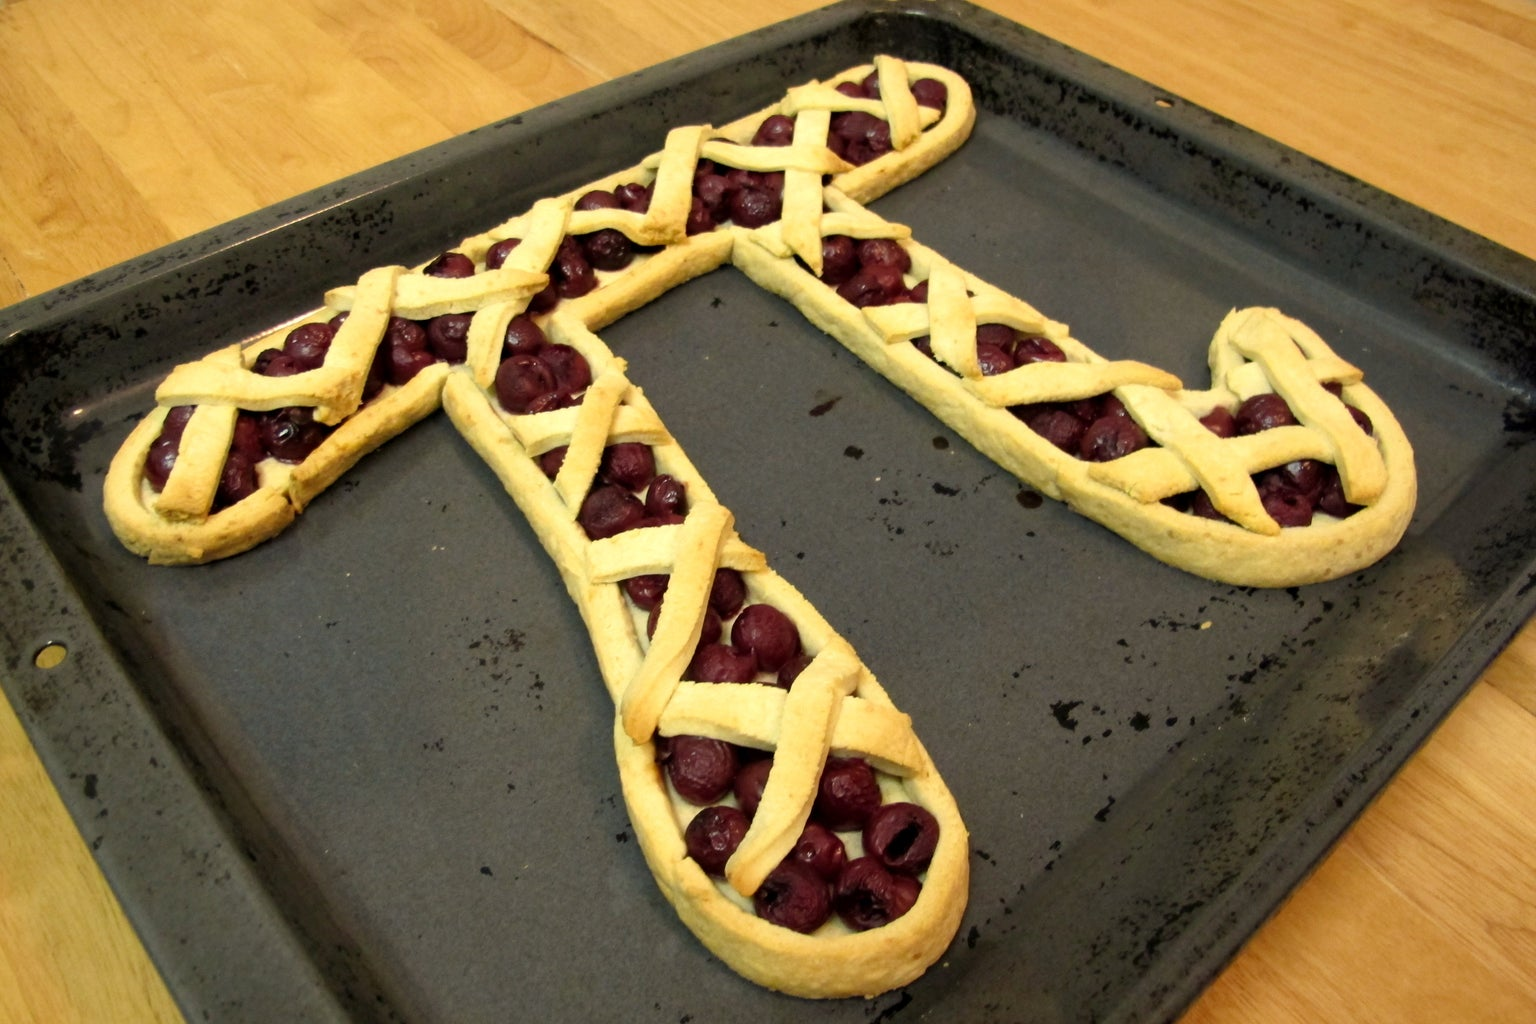 Bake the Maths in the Oven